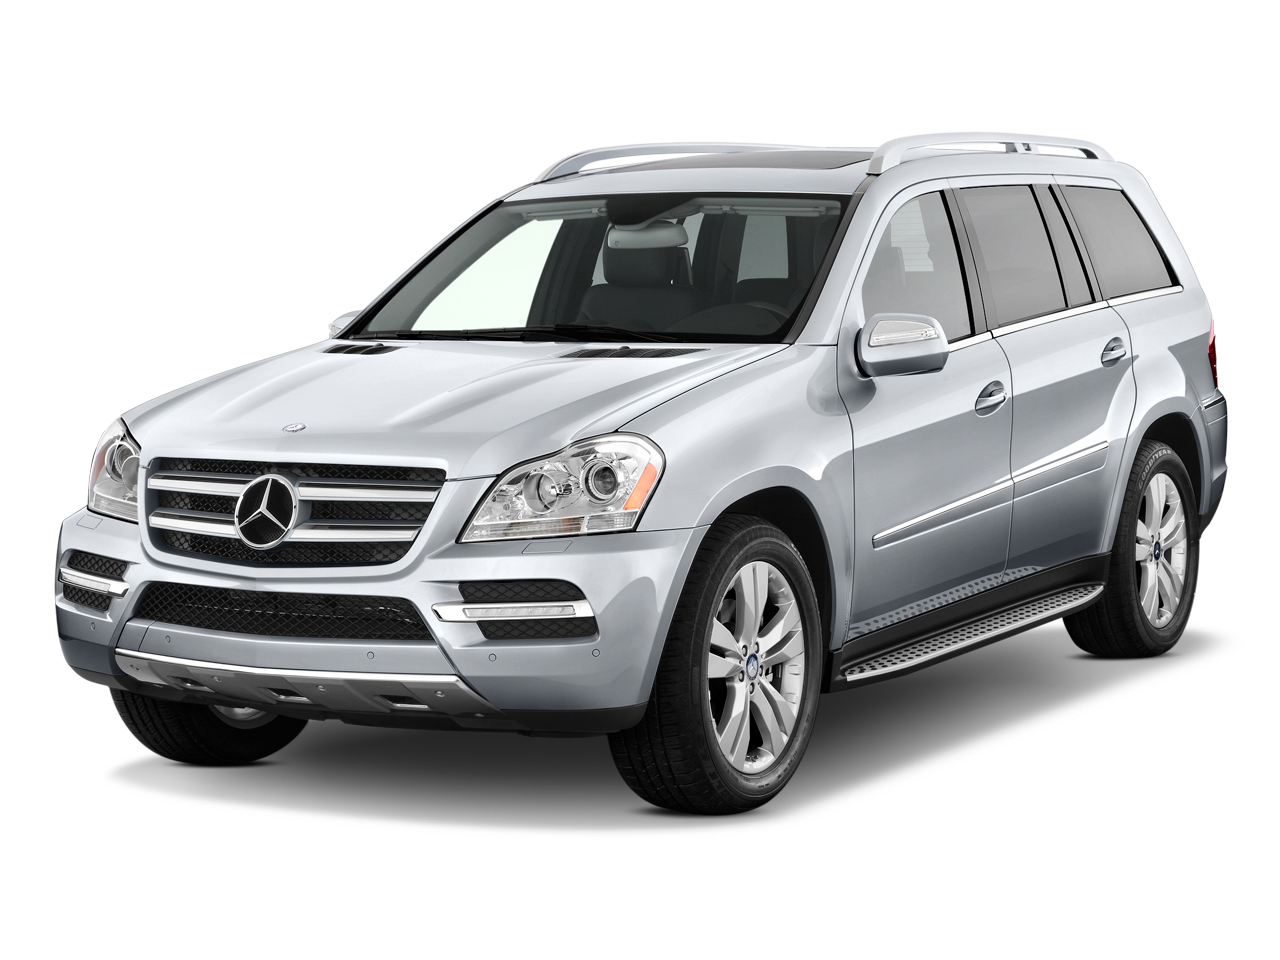 2011 mercedes benz gl class review ratings specs prices. Black Bedroom Furniture Sets. Home Design Ideas